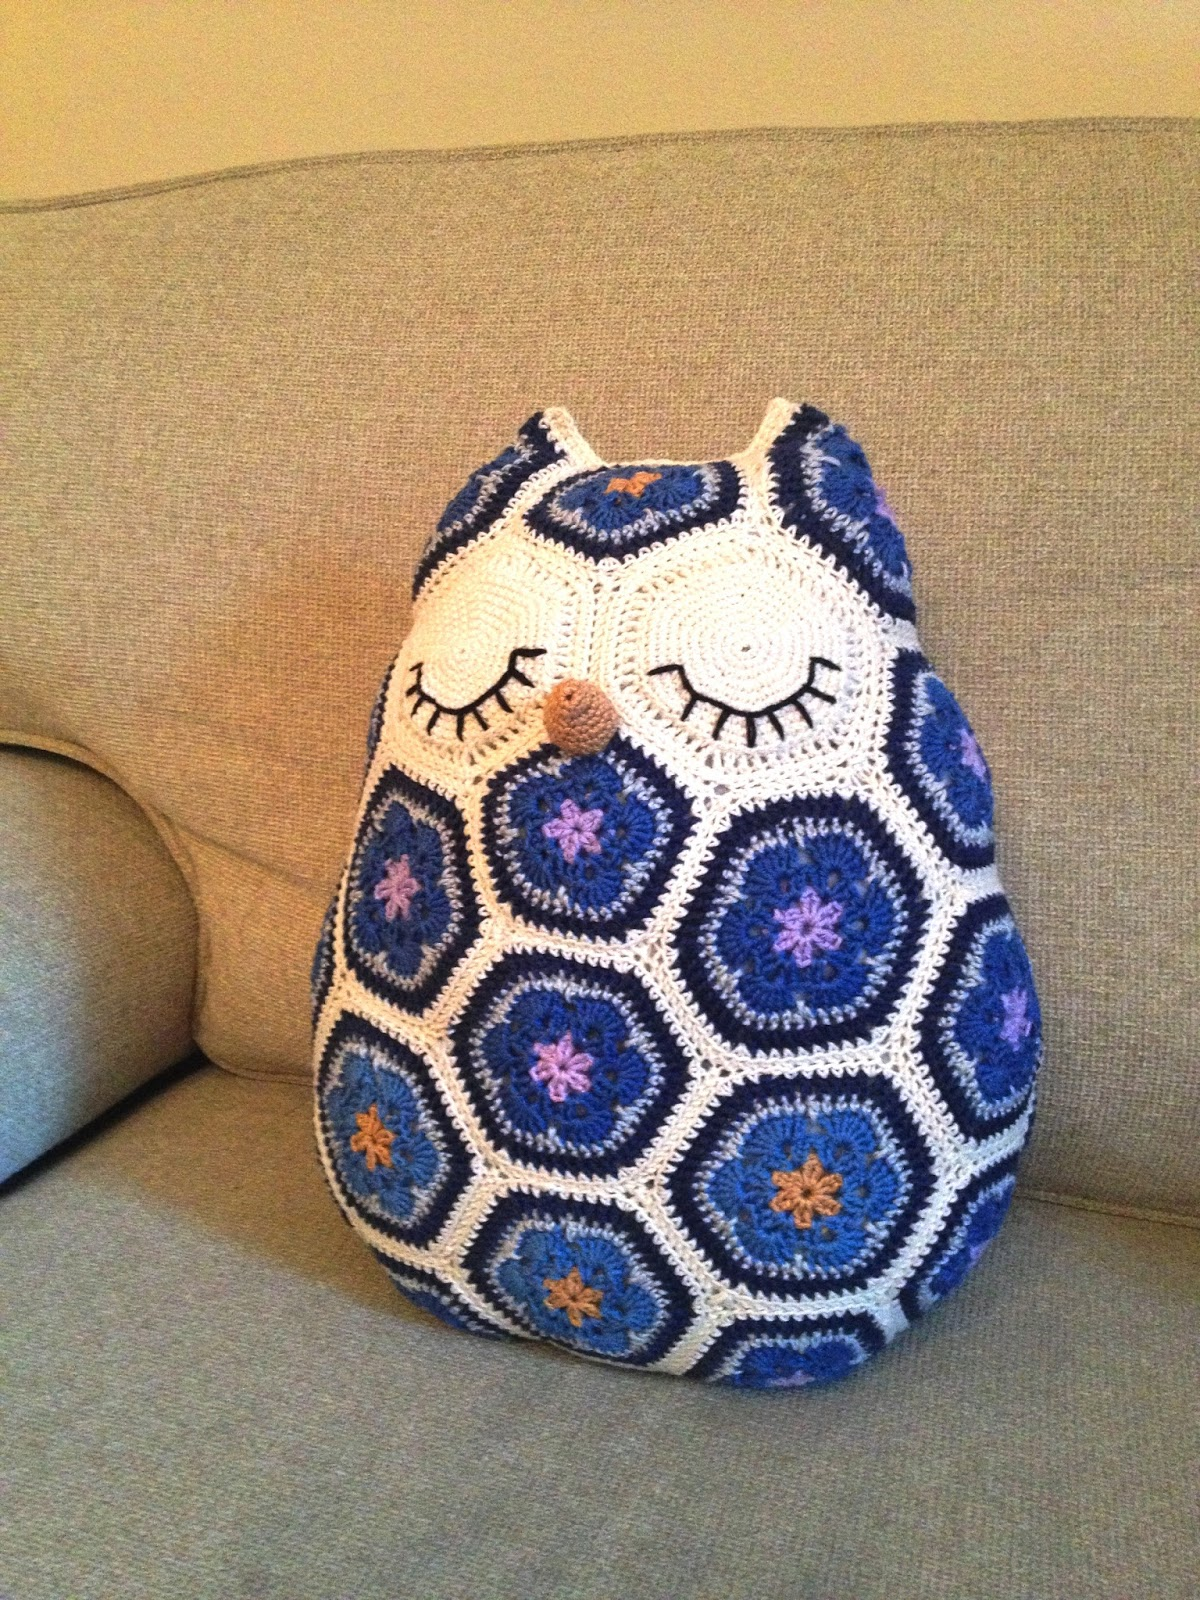 Birdy Quilts Uil Van African Flowers Owl Made Of African Flowers